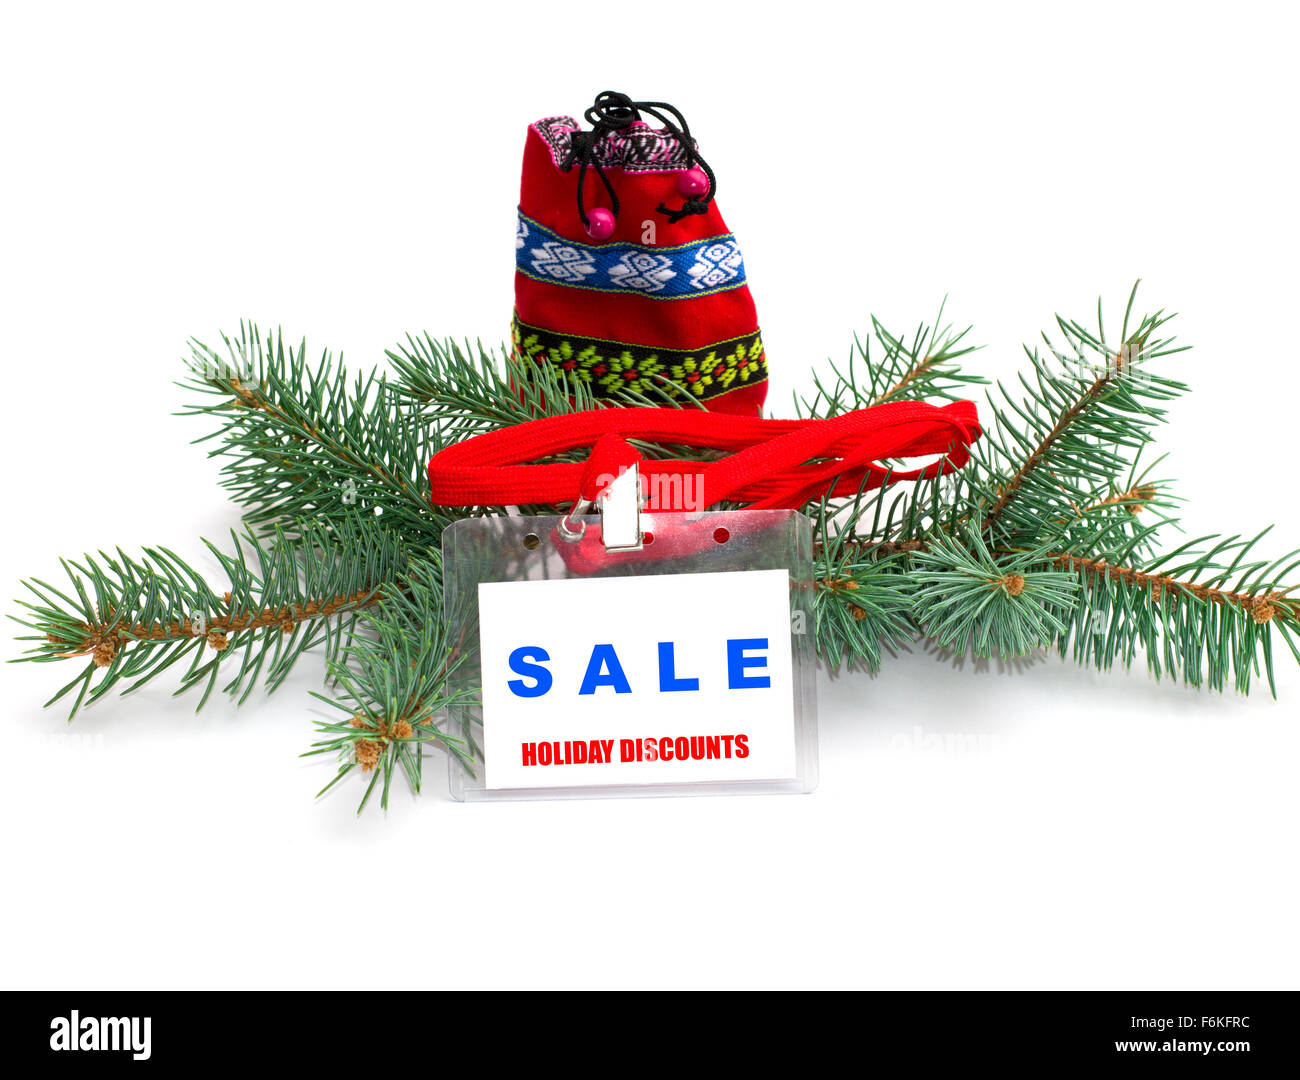 New Years Sale Stock Photos & New Years Sale Stock Images - Alamy